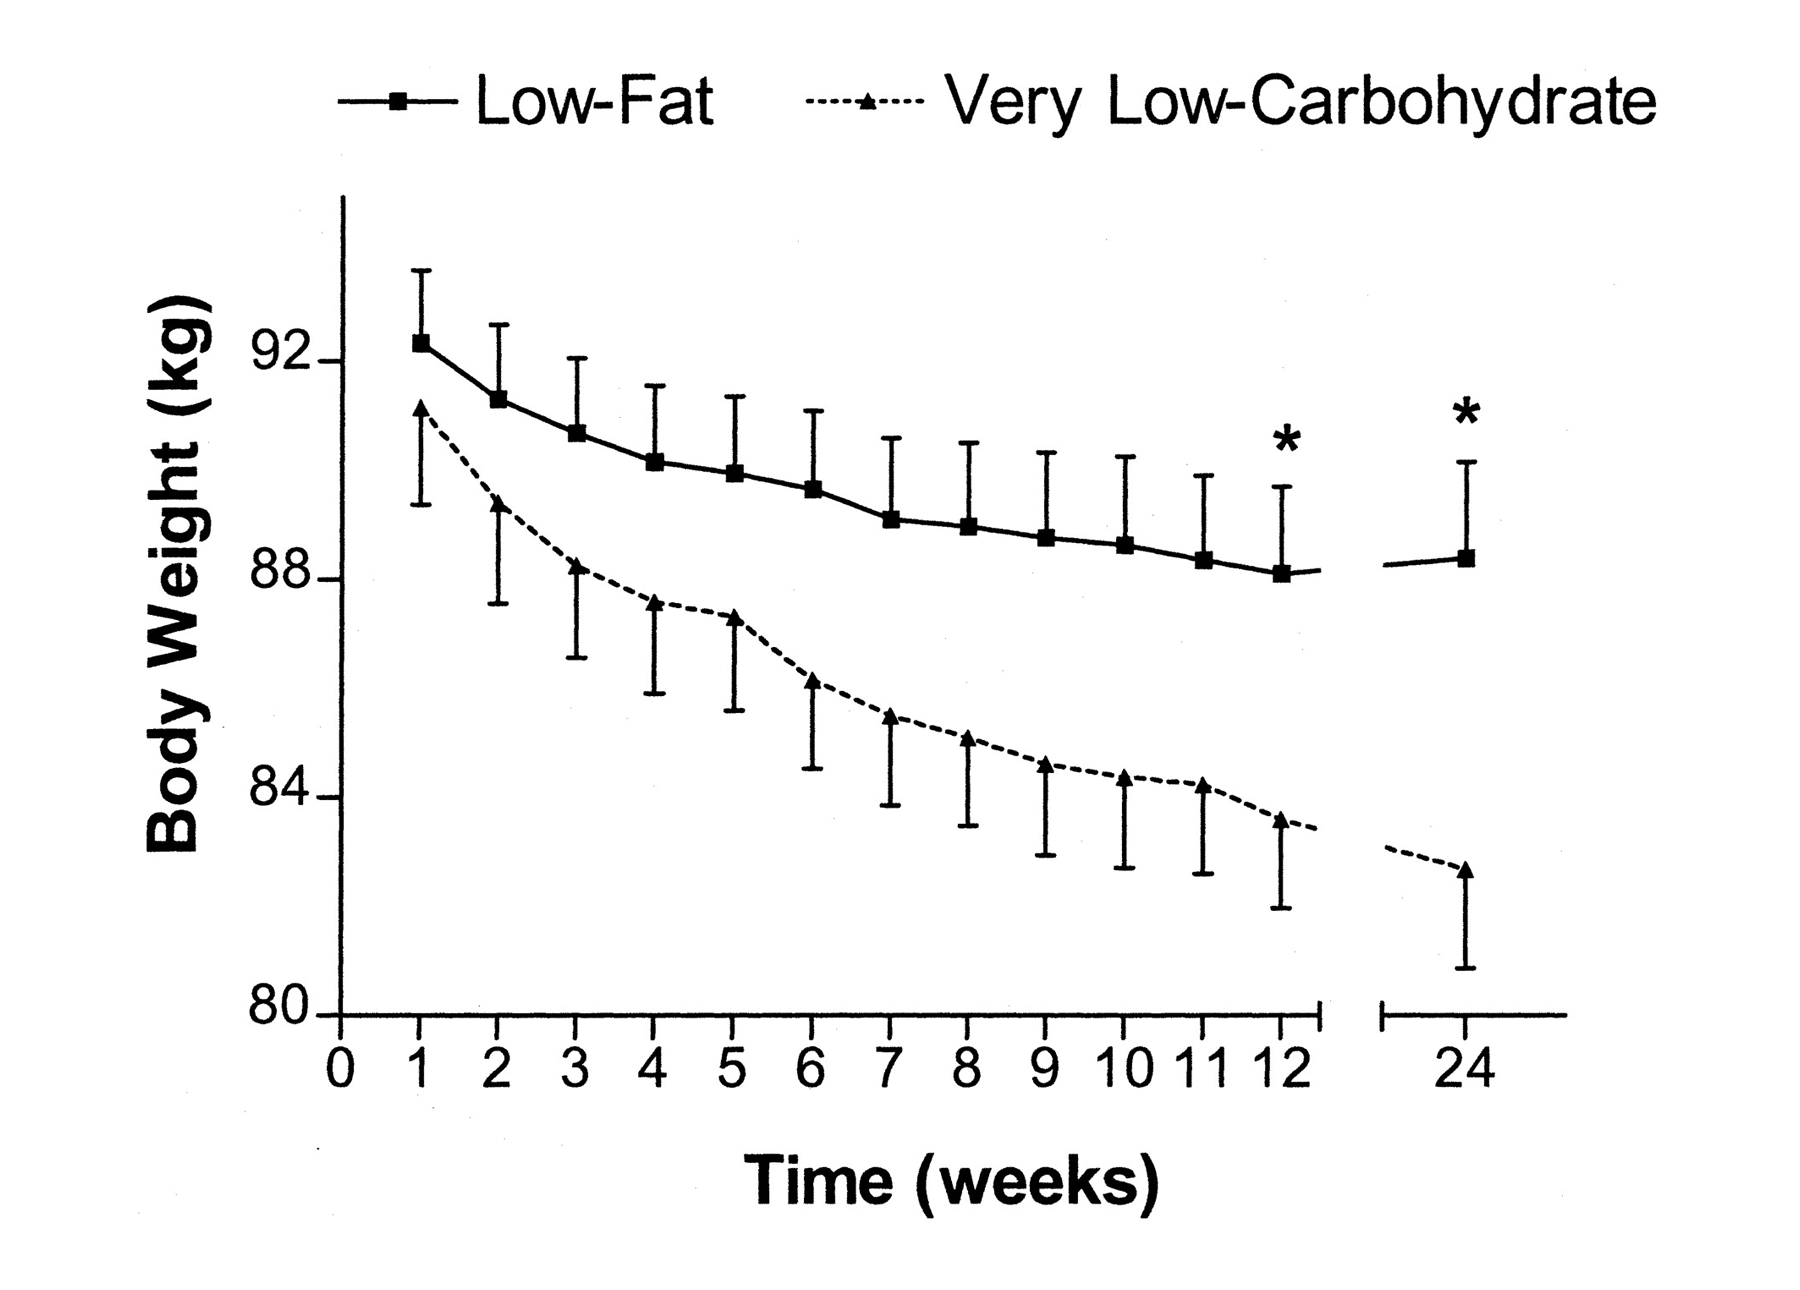 Body Weight Time Chart Fat Carbohydrate